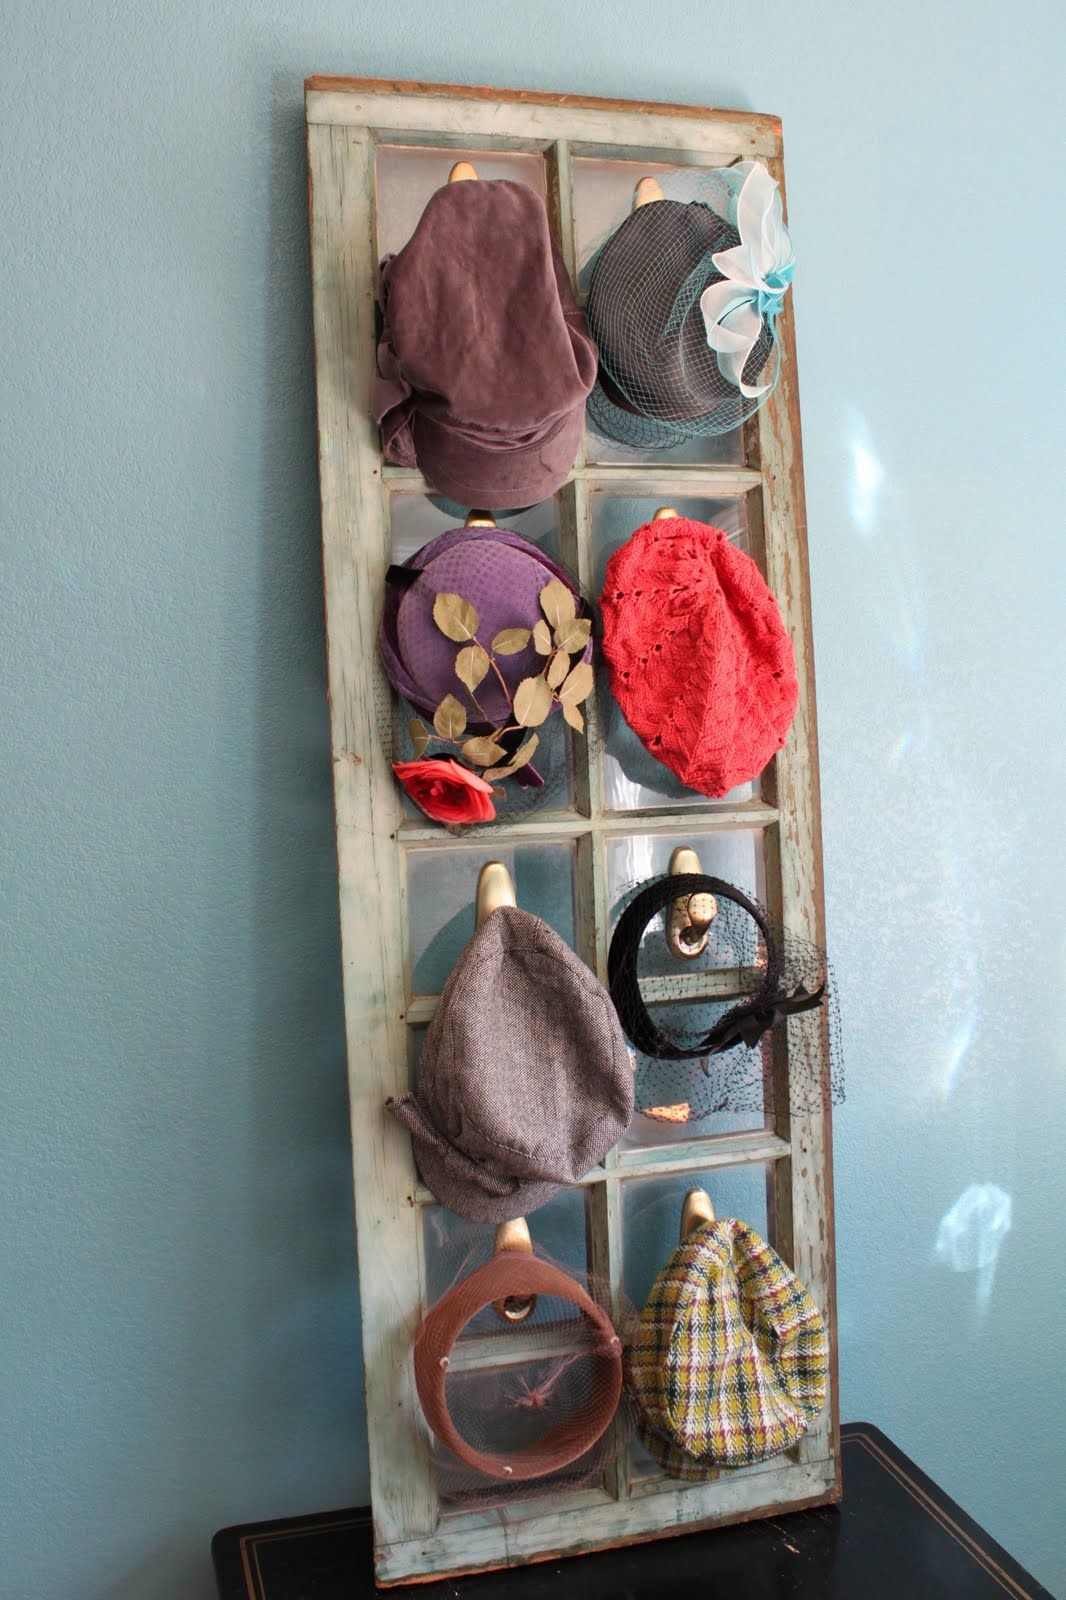 Hut Aufbewahrung Diy Vintage Hat Display 3 This 帽子收纳 Hat Storage Hut